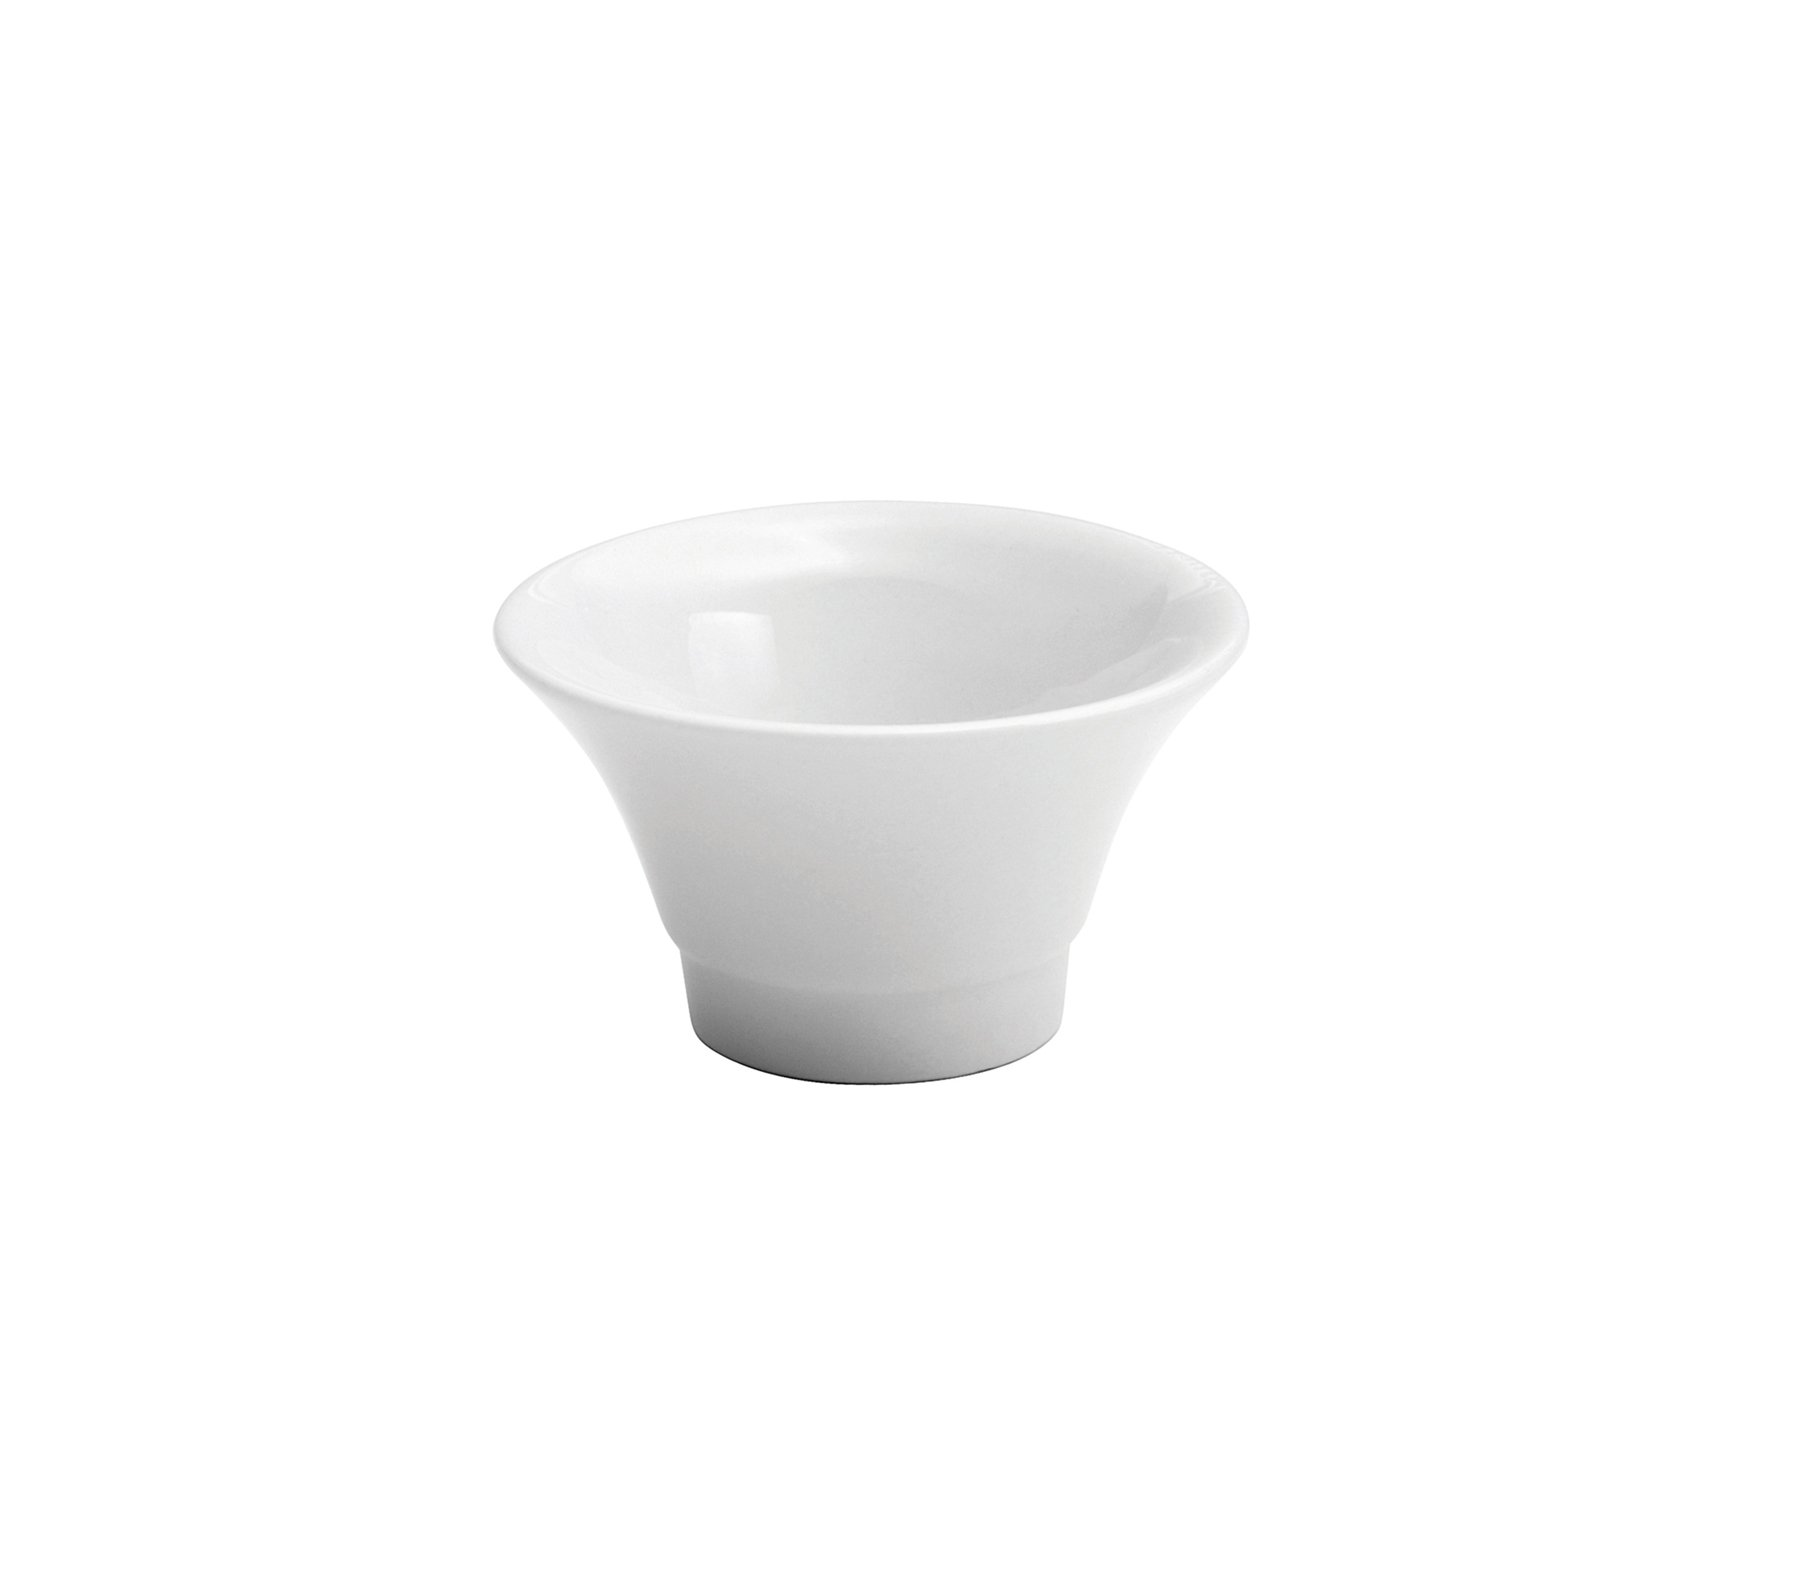 Oneida Foodservice F8010000952 Bright White Sauce Dish (Set of 72)